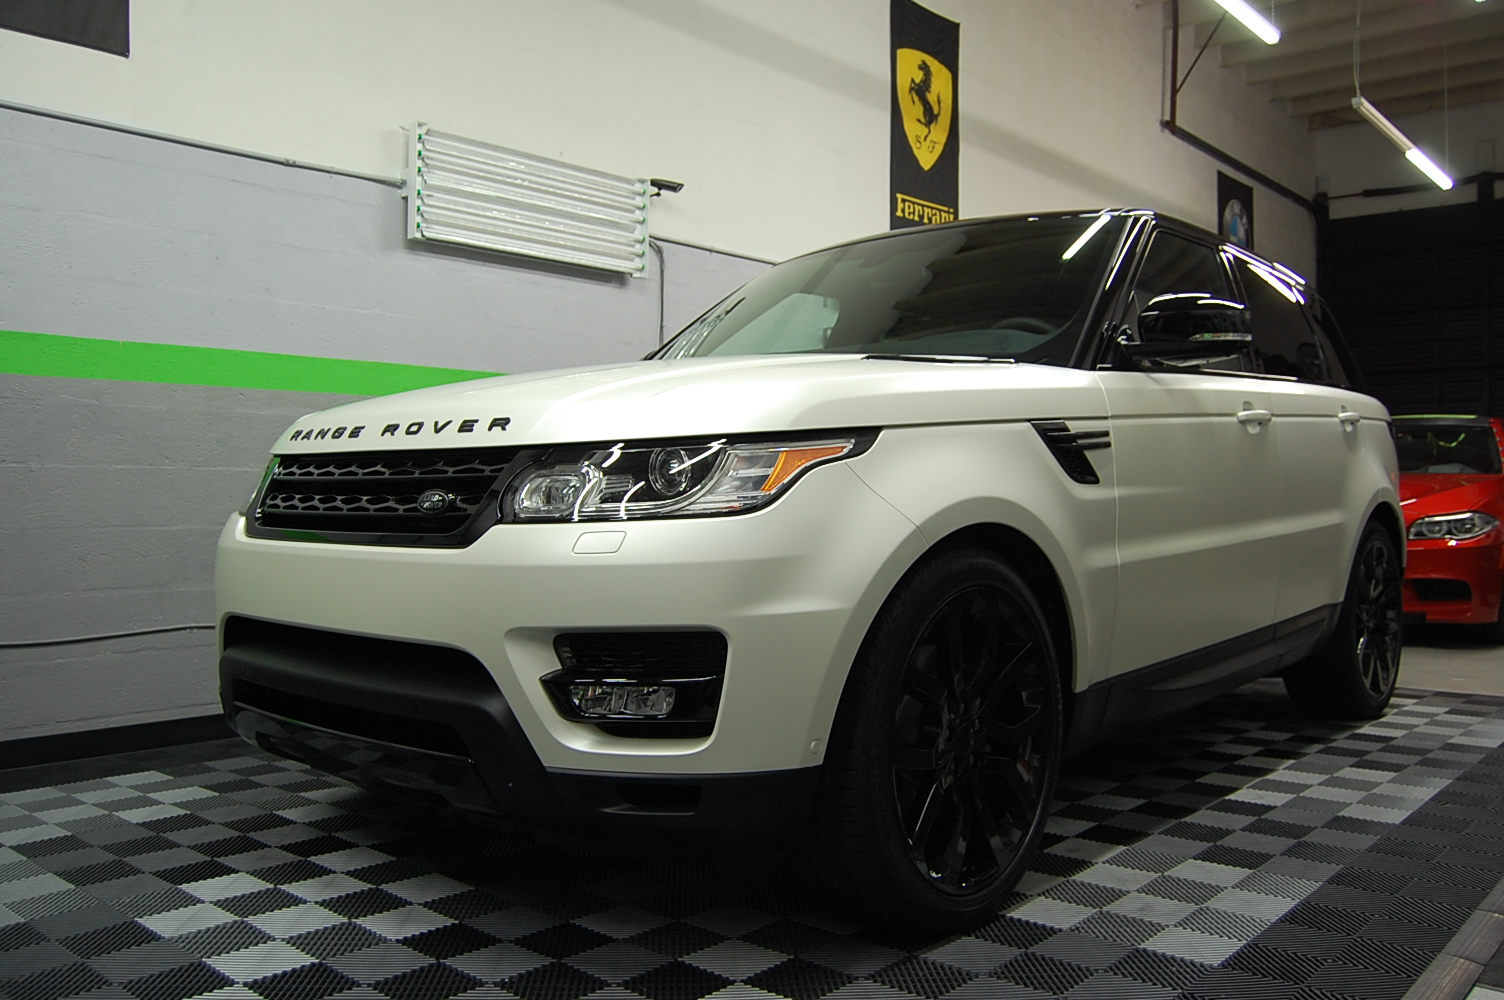 2014 Range Rover 3m Satin Pearl White Car Wrap Miami With Gloss Black Accents Miami Car Wraps